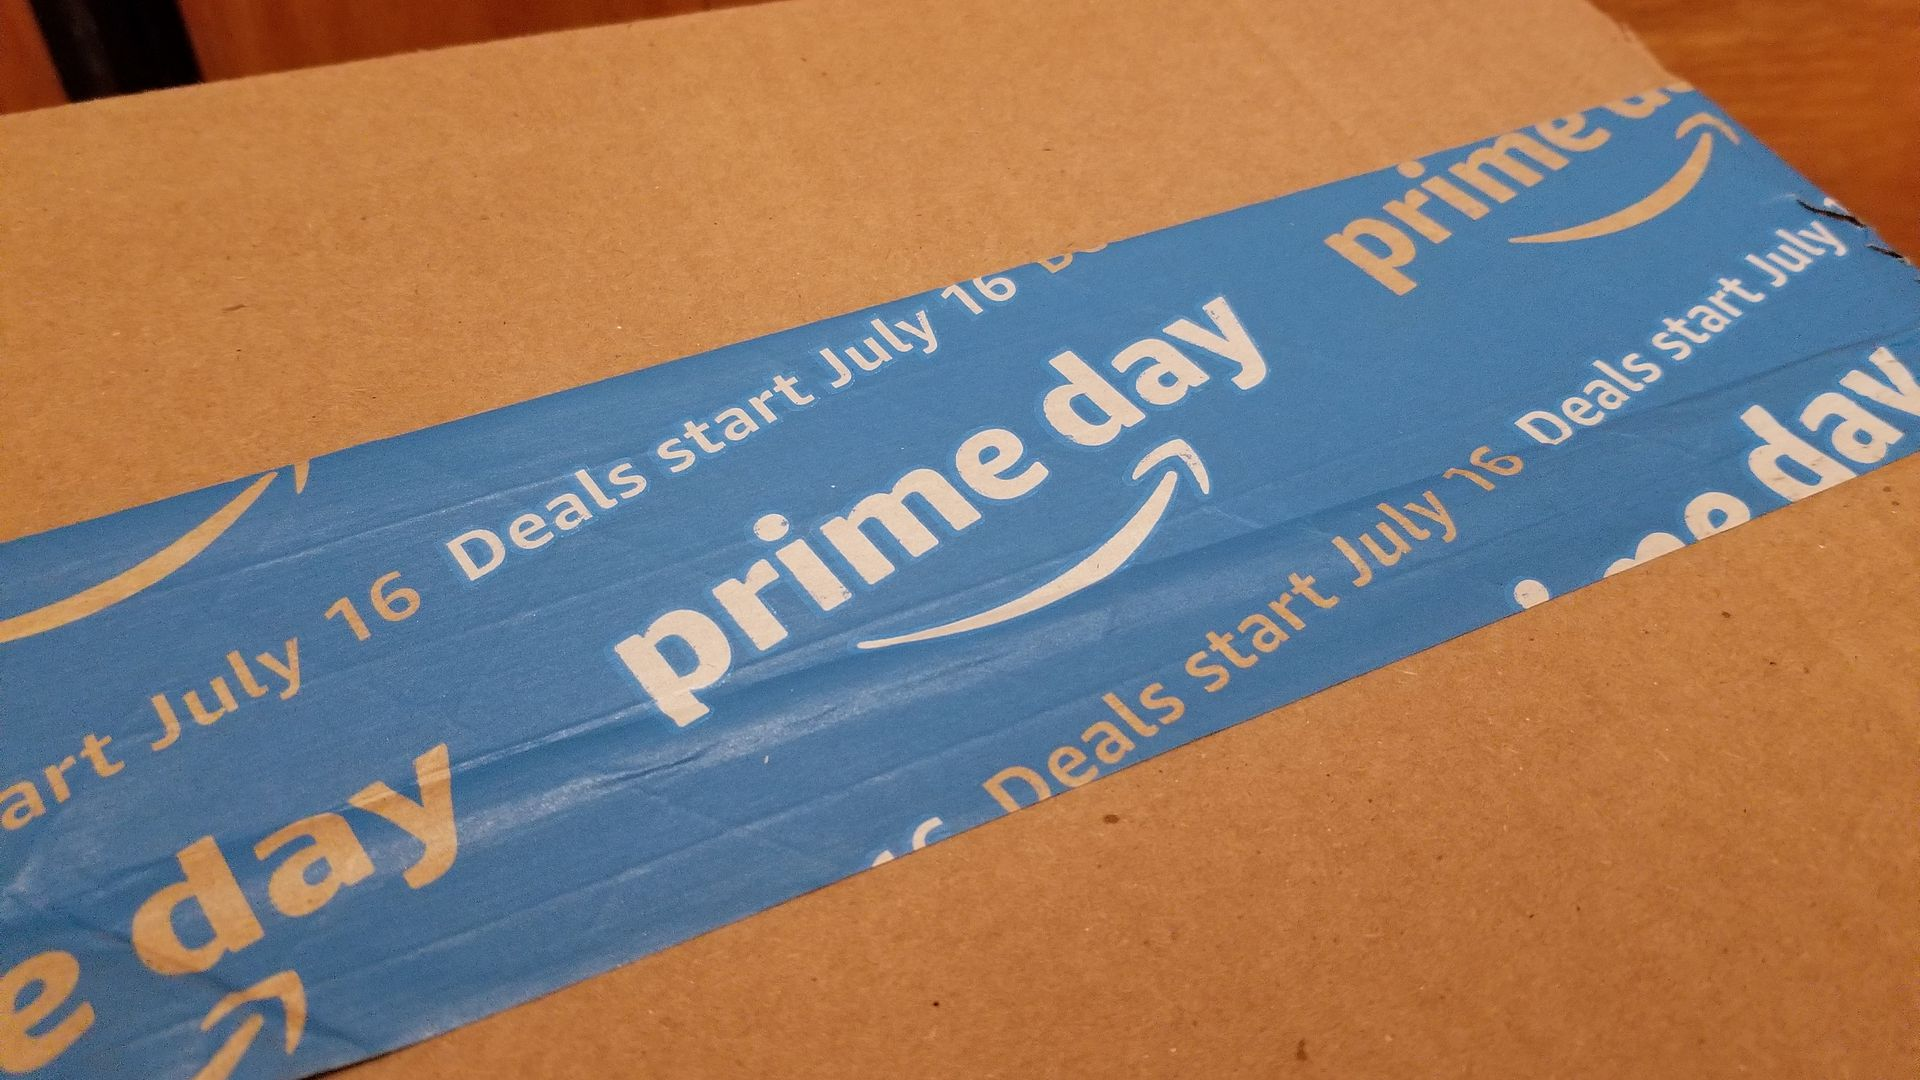 Amazon notches its biggest Prime Day yet - Axios